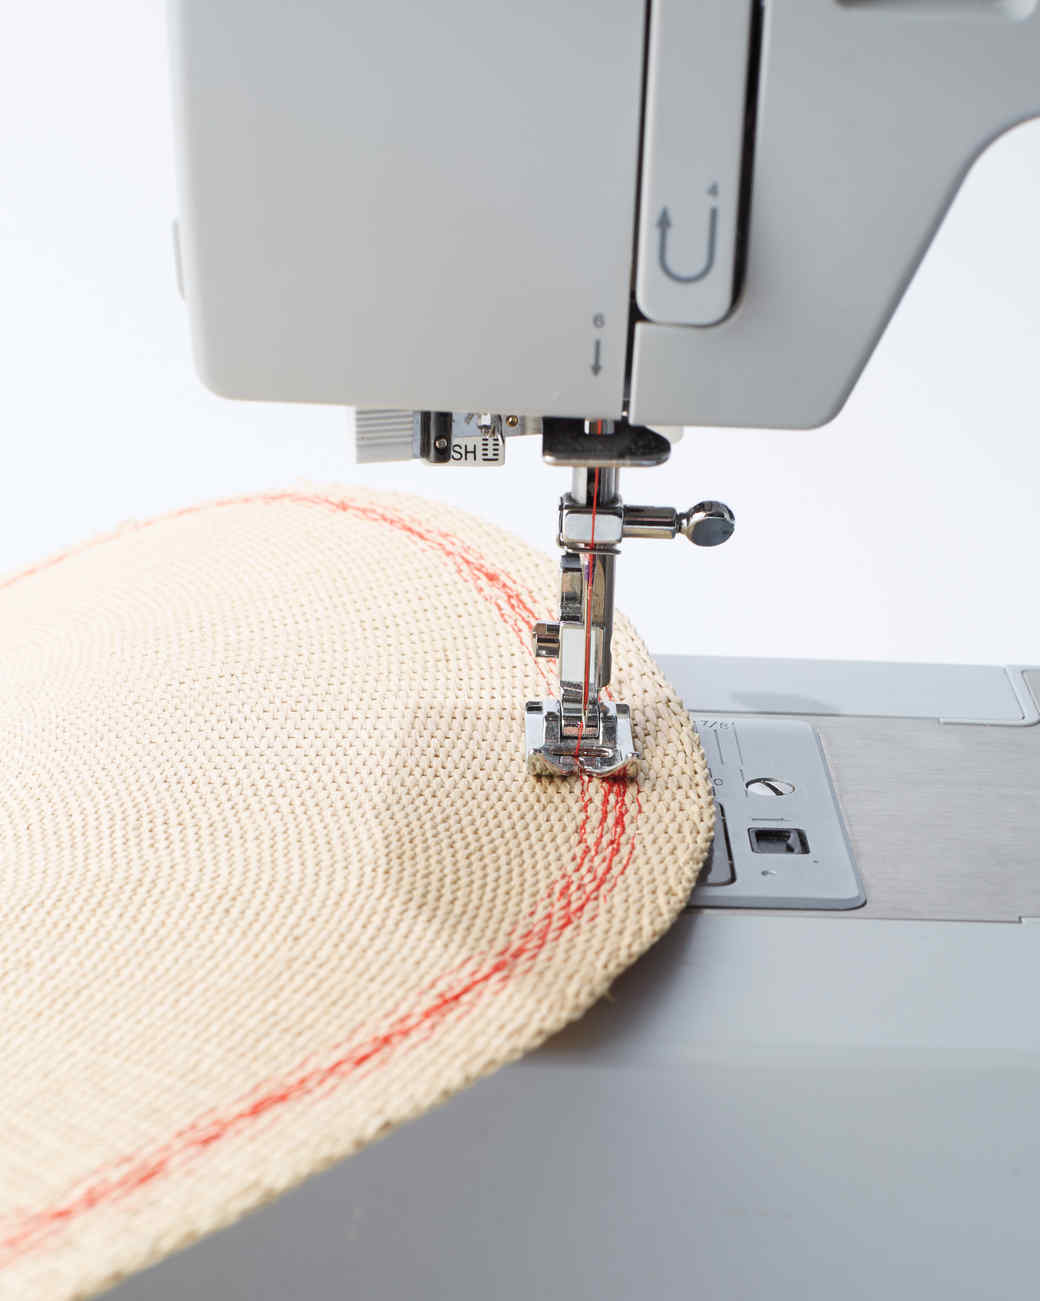 red-placemat-and-sewing-machine-123-d111169.jpg